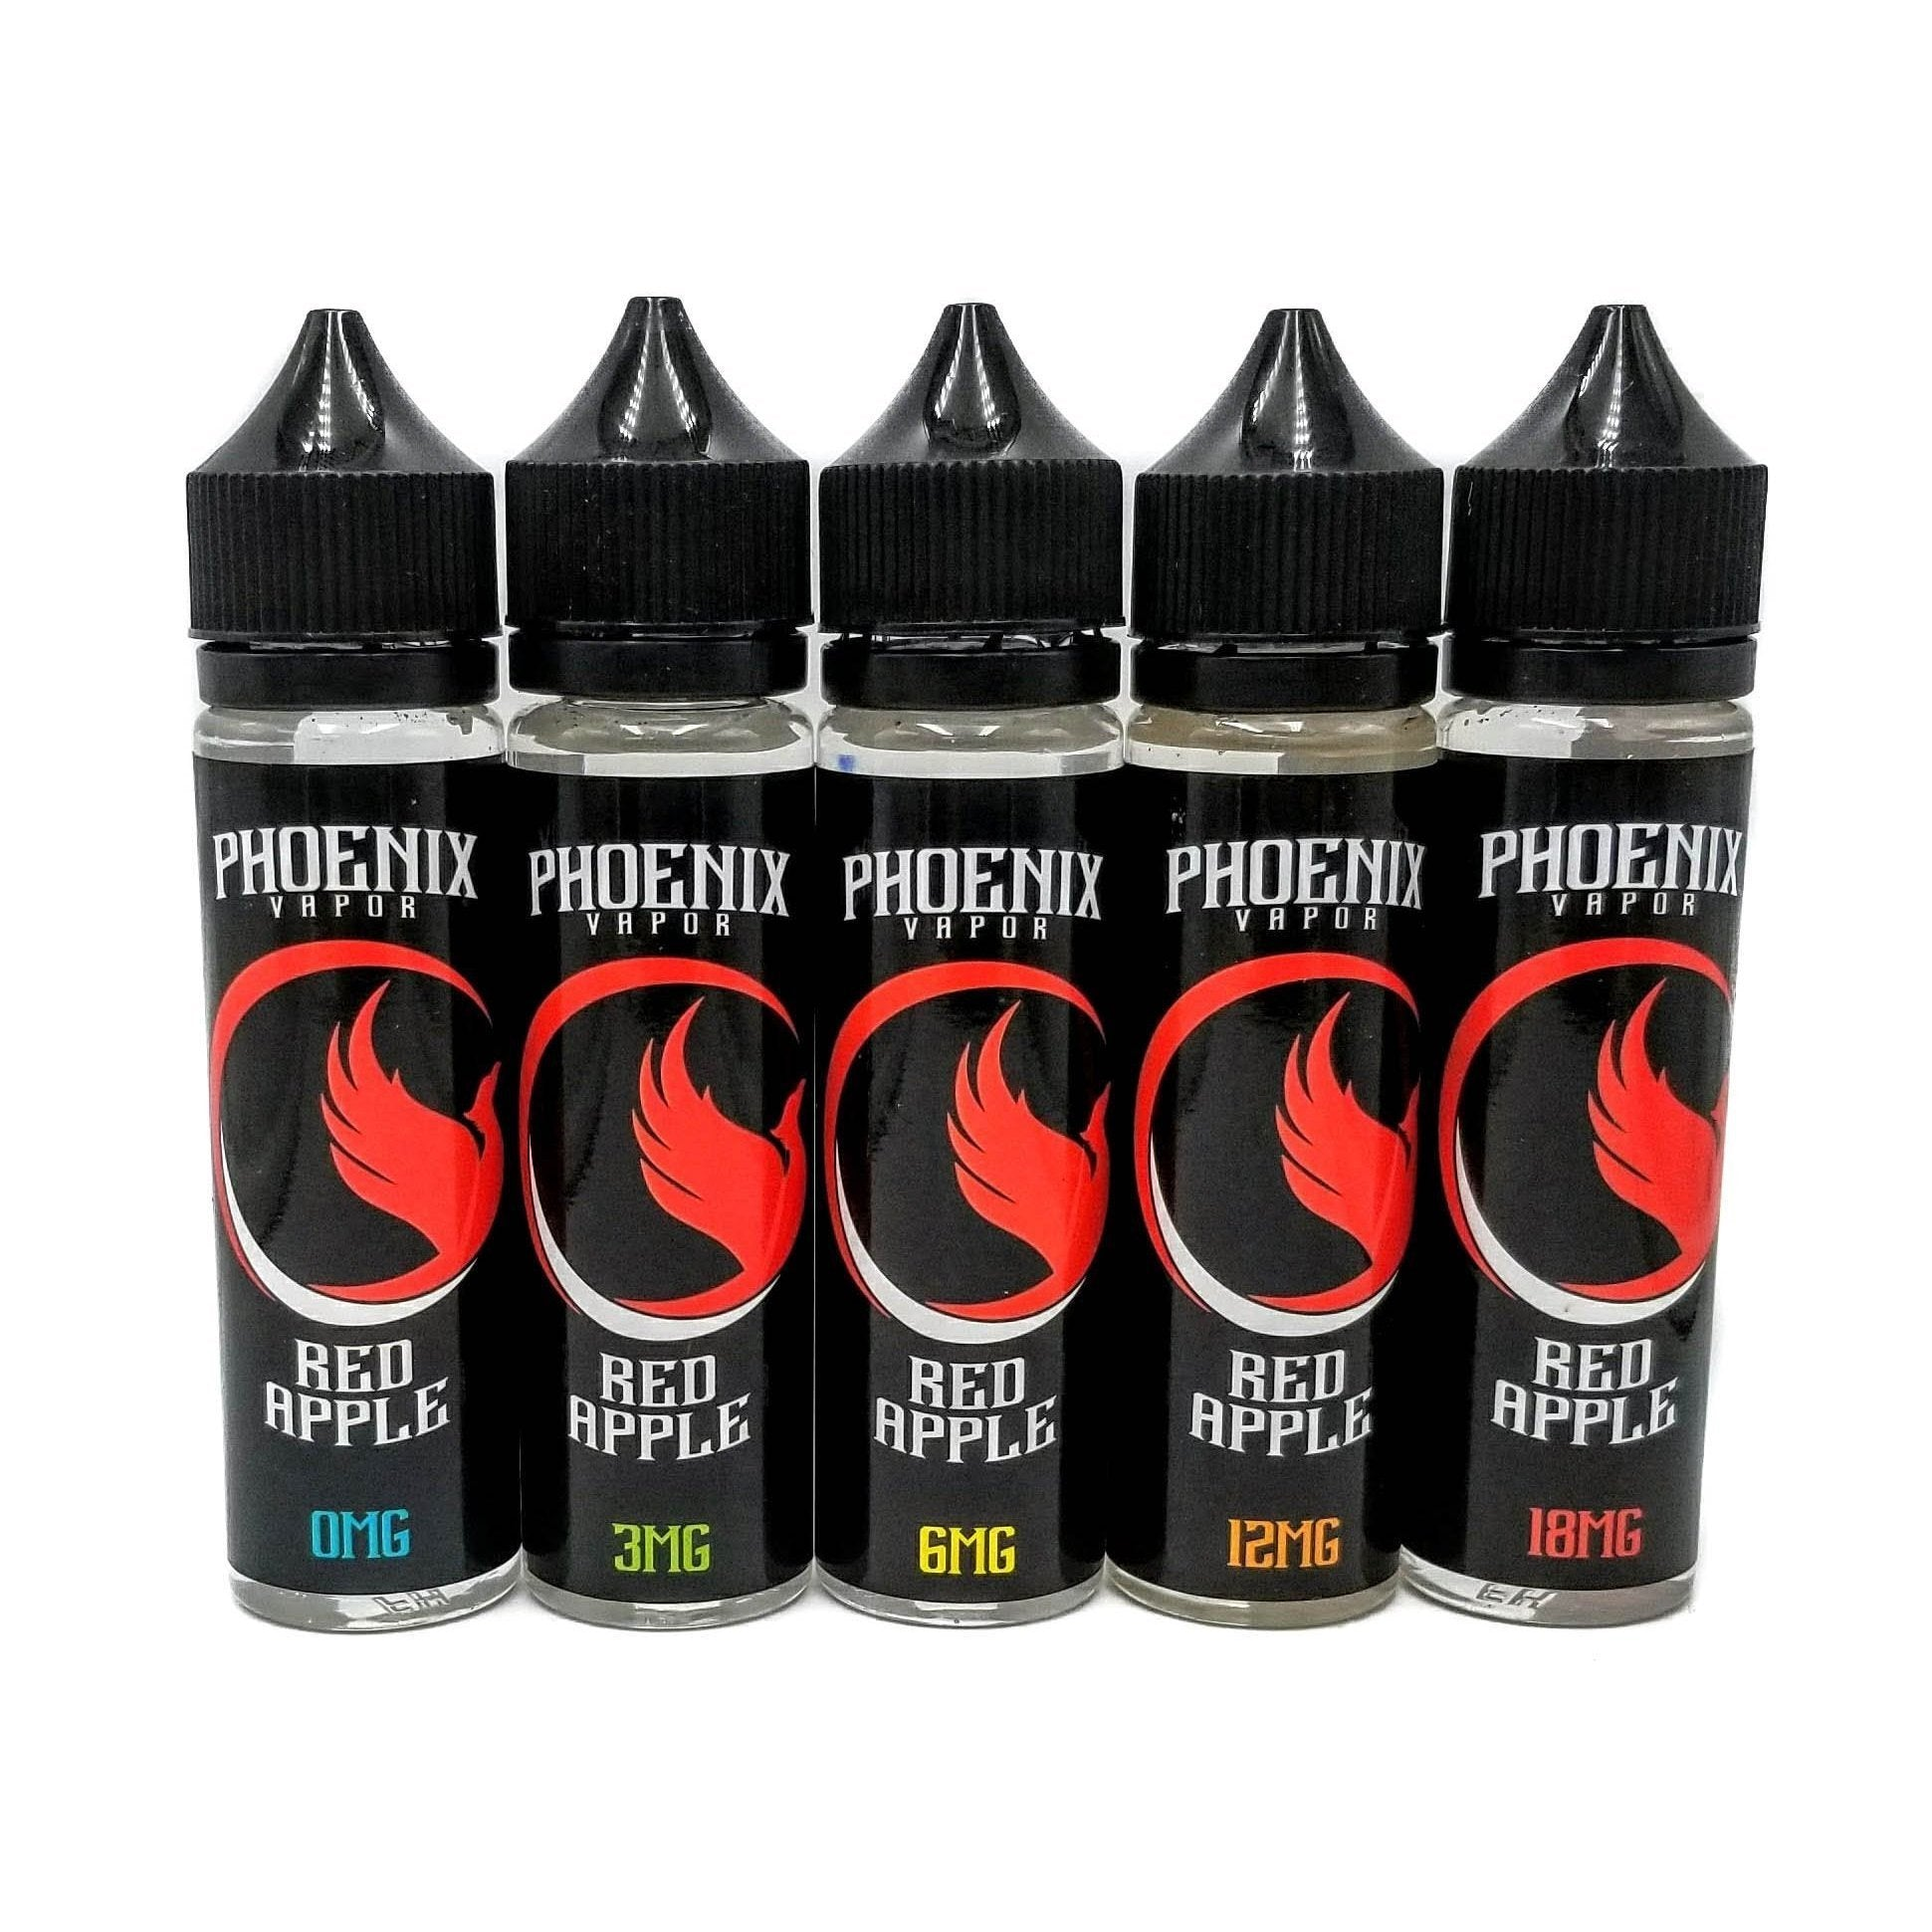 Phoenix Vapor E-Liquid E-Liquid 60 ml / 0 mg Red Apple by Phoenix Vapor